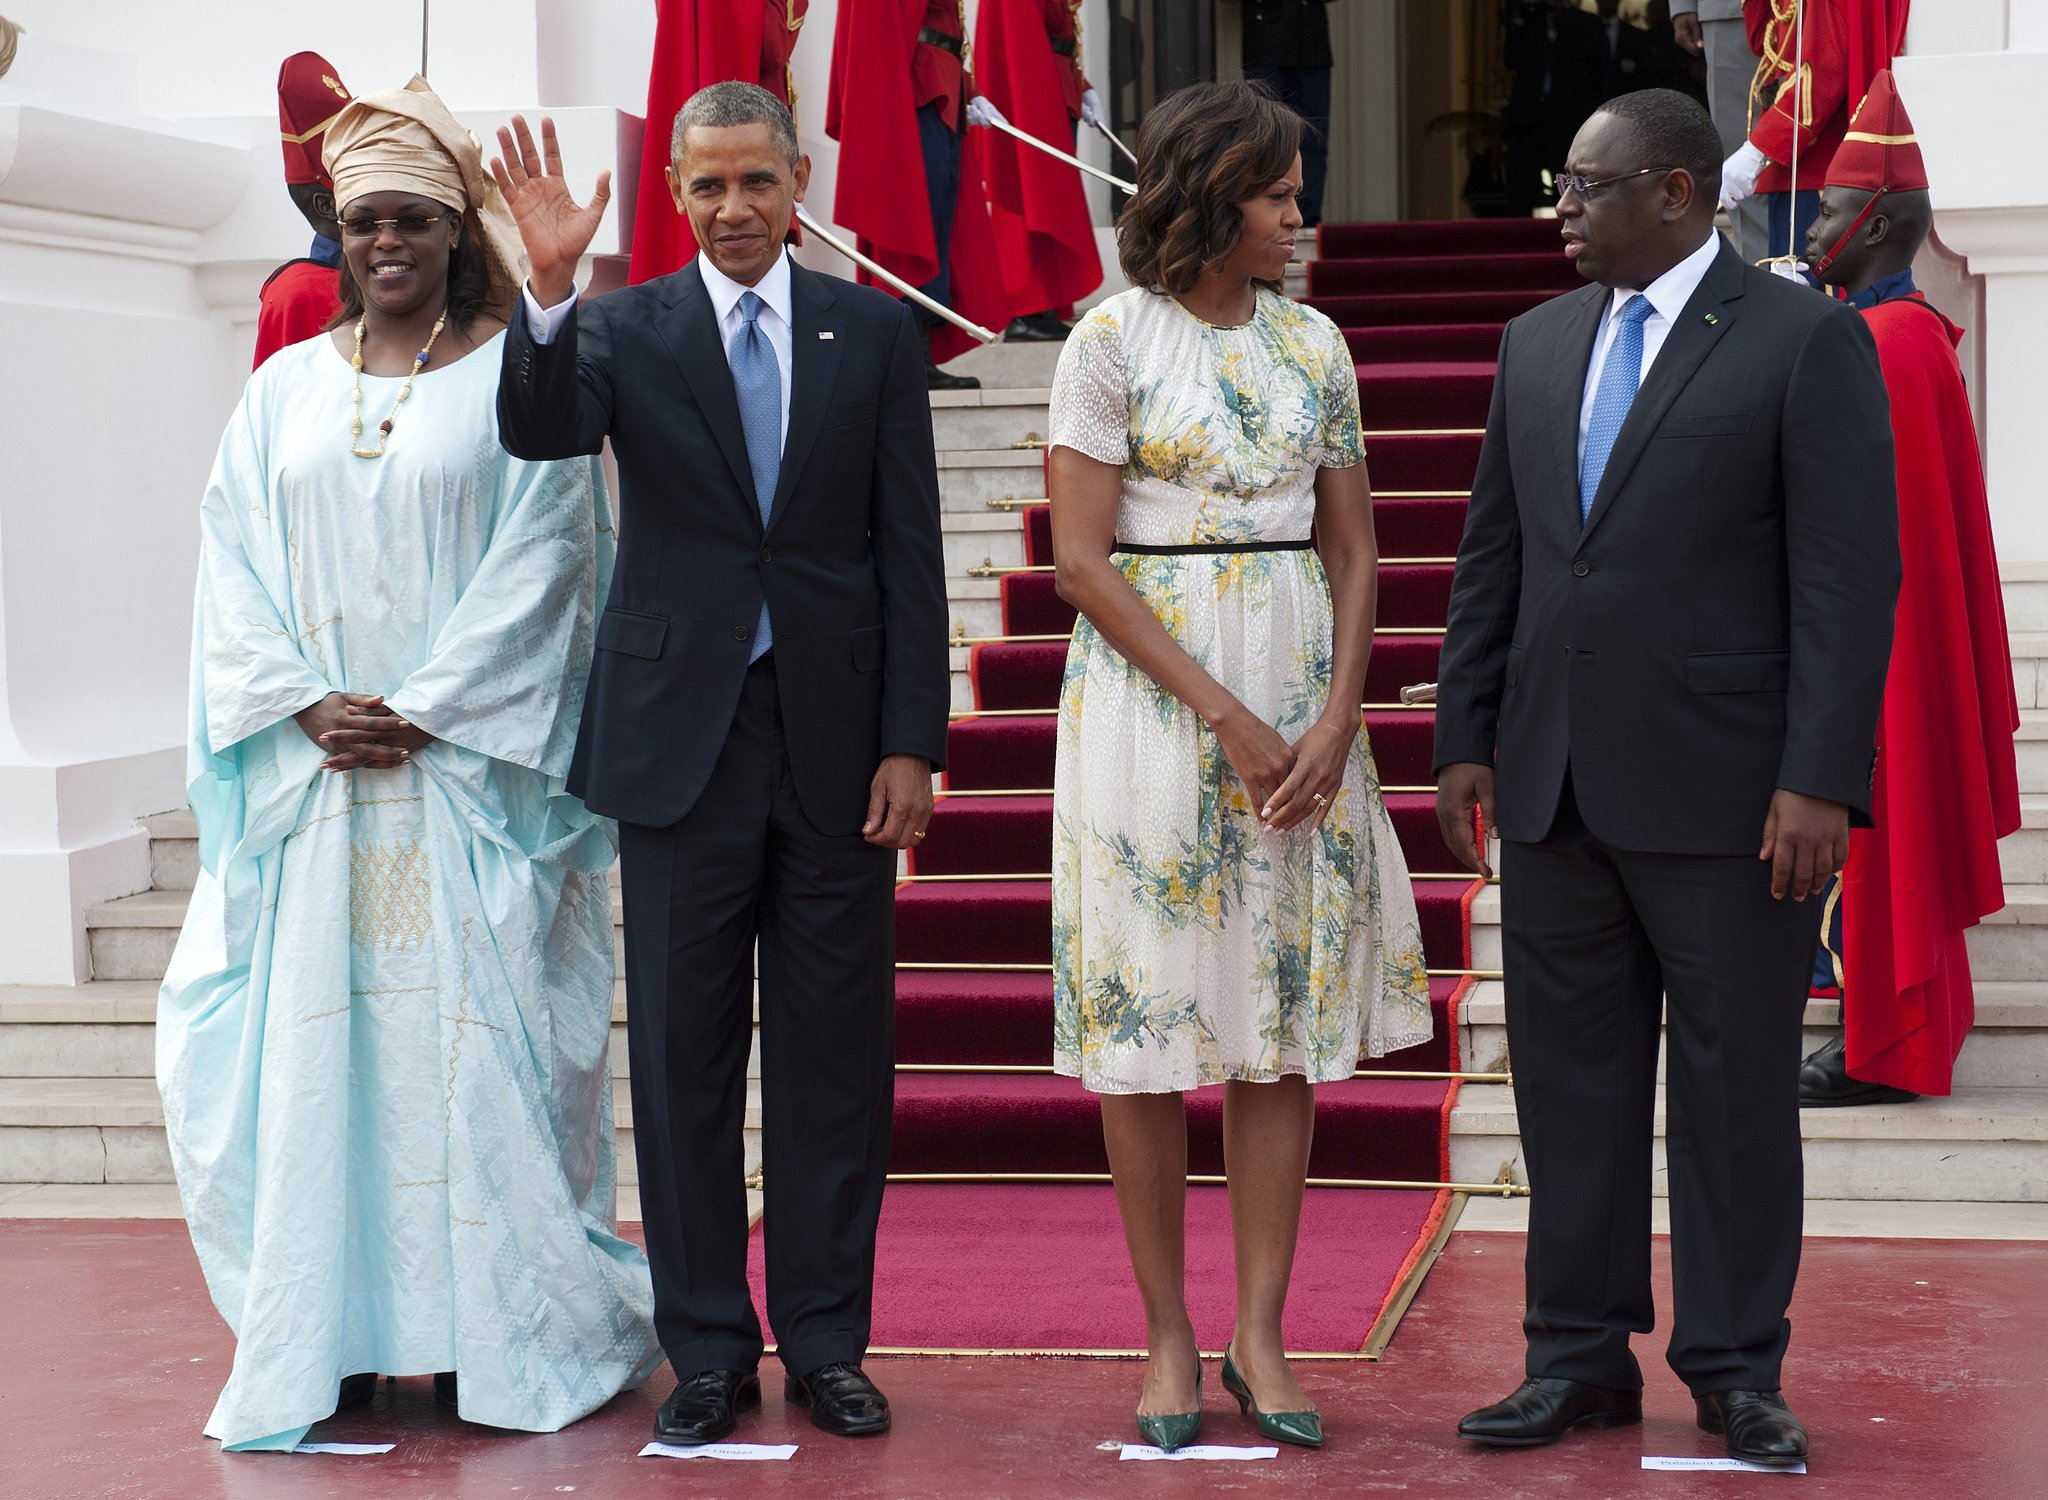 The first lady was a breath of fresh air in a retro floral dress and green kitten pumps as she and President Obama were greeted by Senegal's President at the Presidential Palace in Dakar.